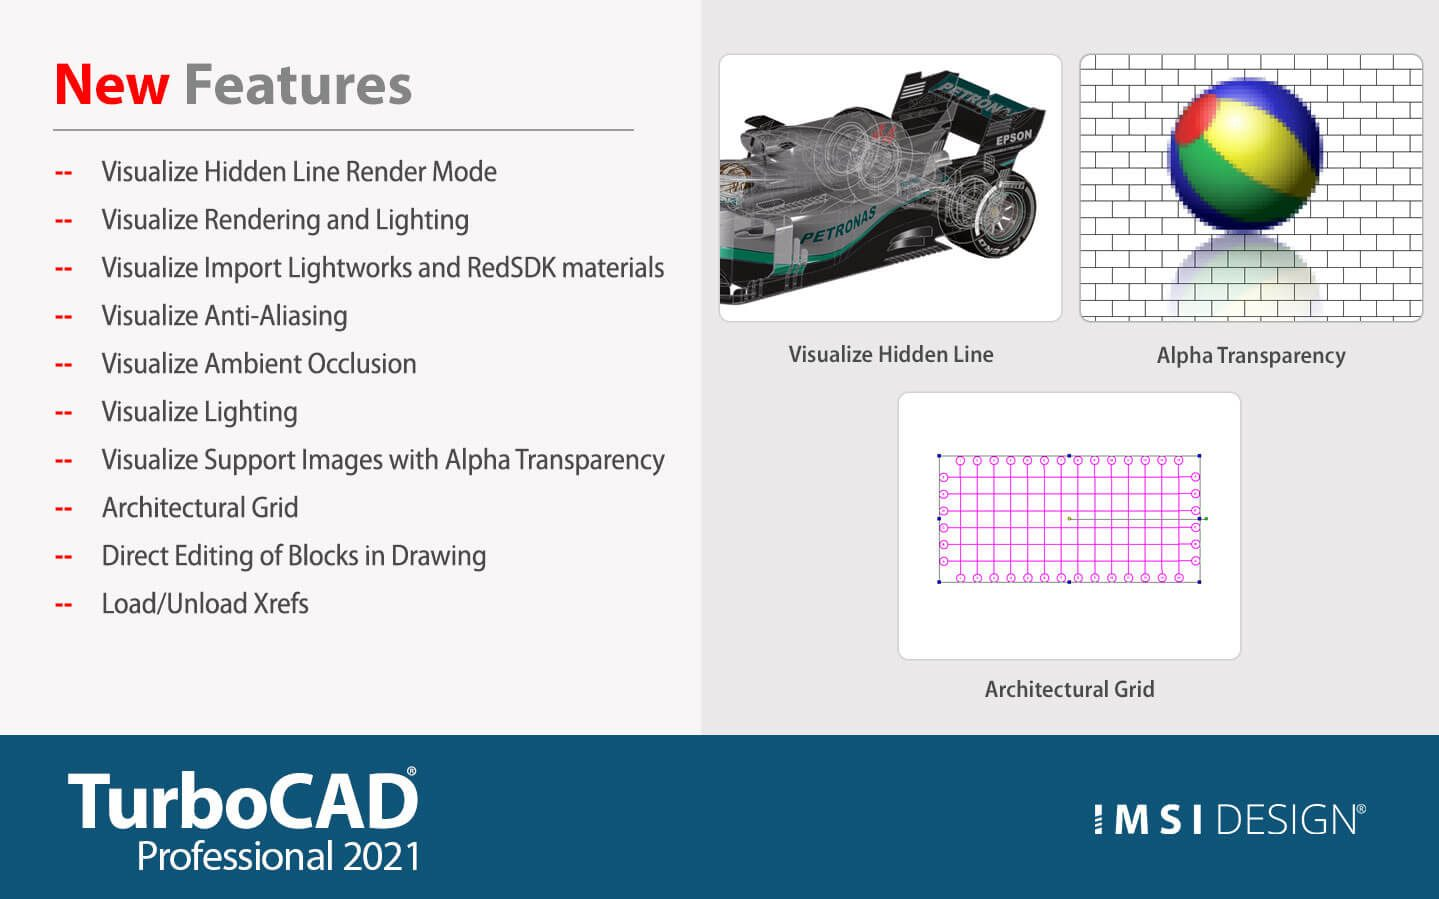 What's New in TurboCAD Pro